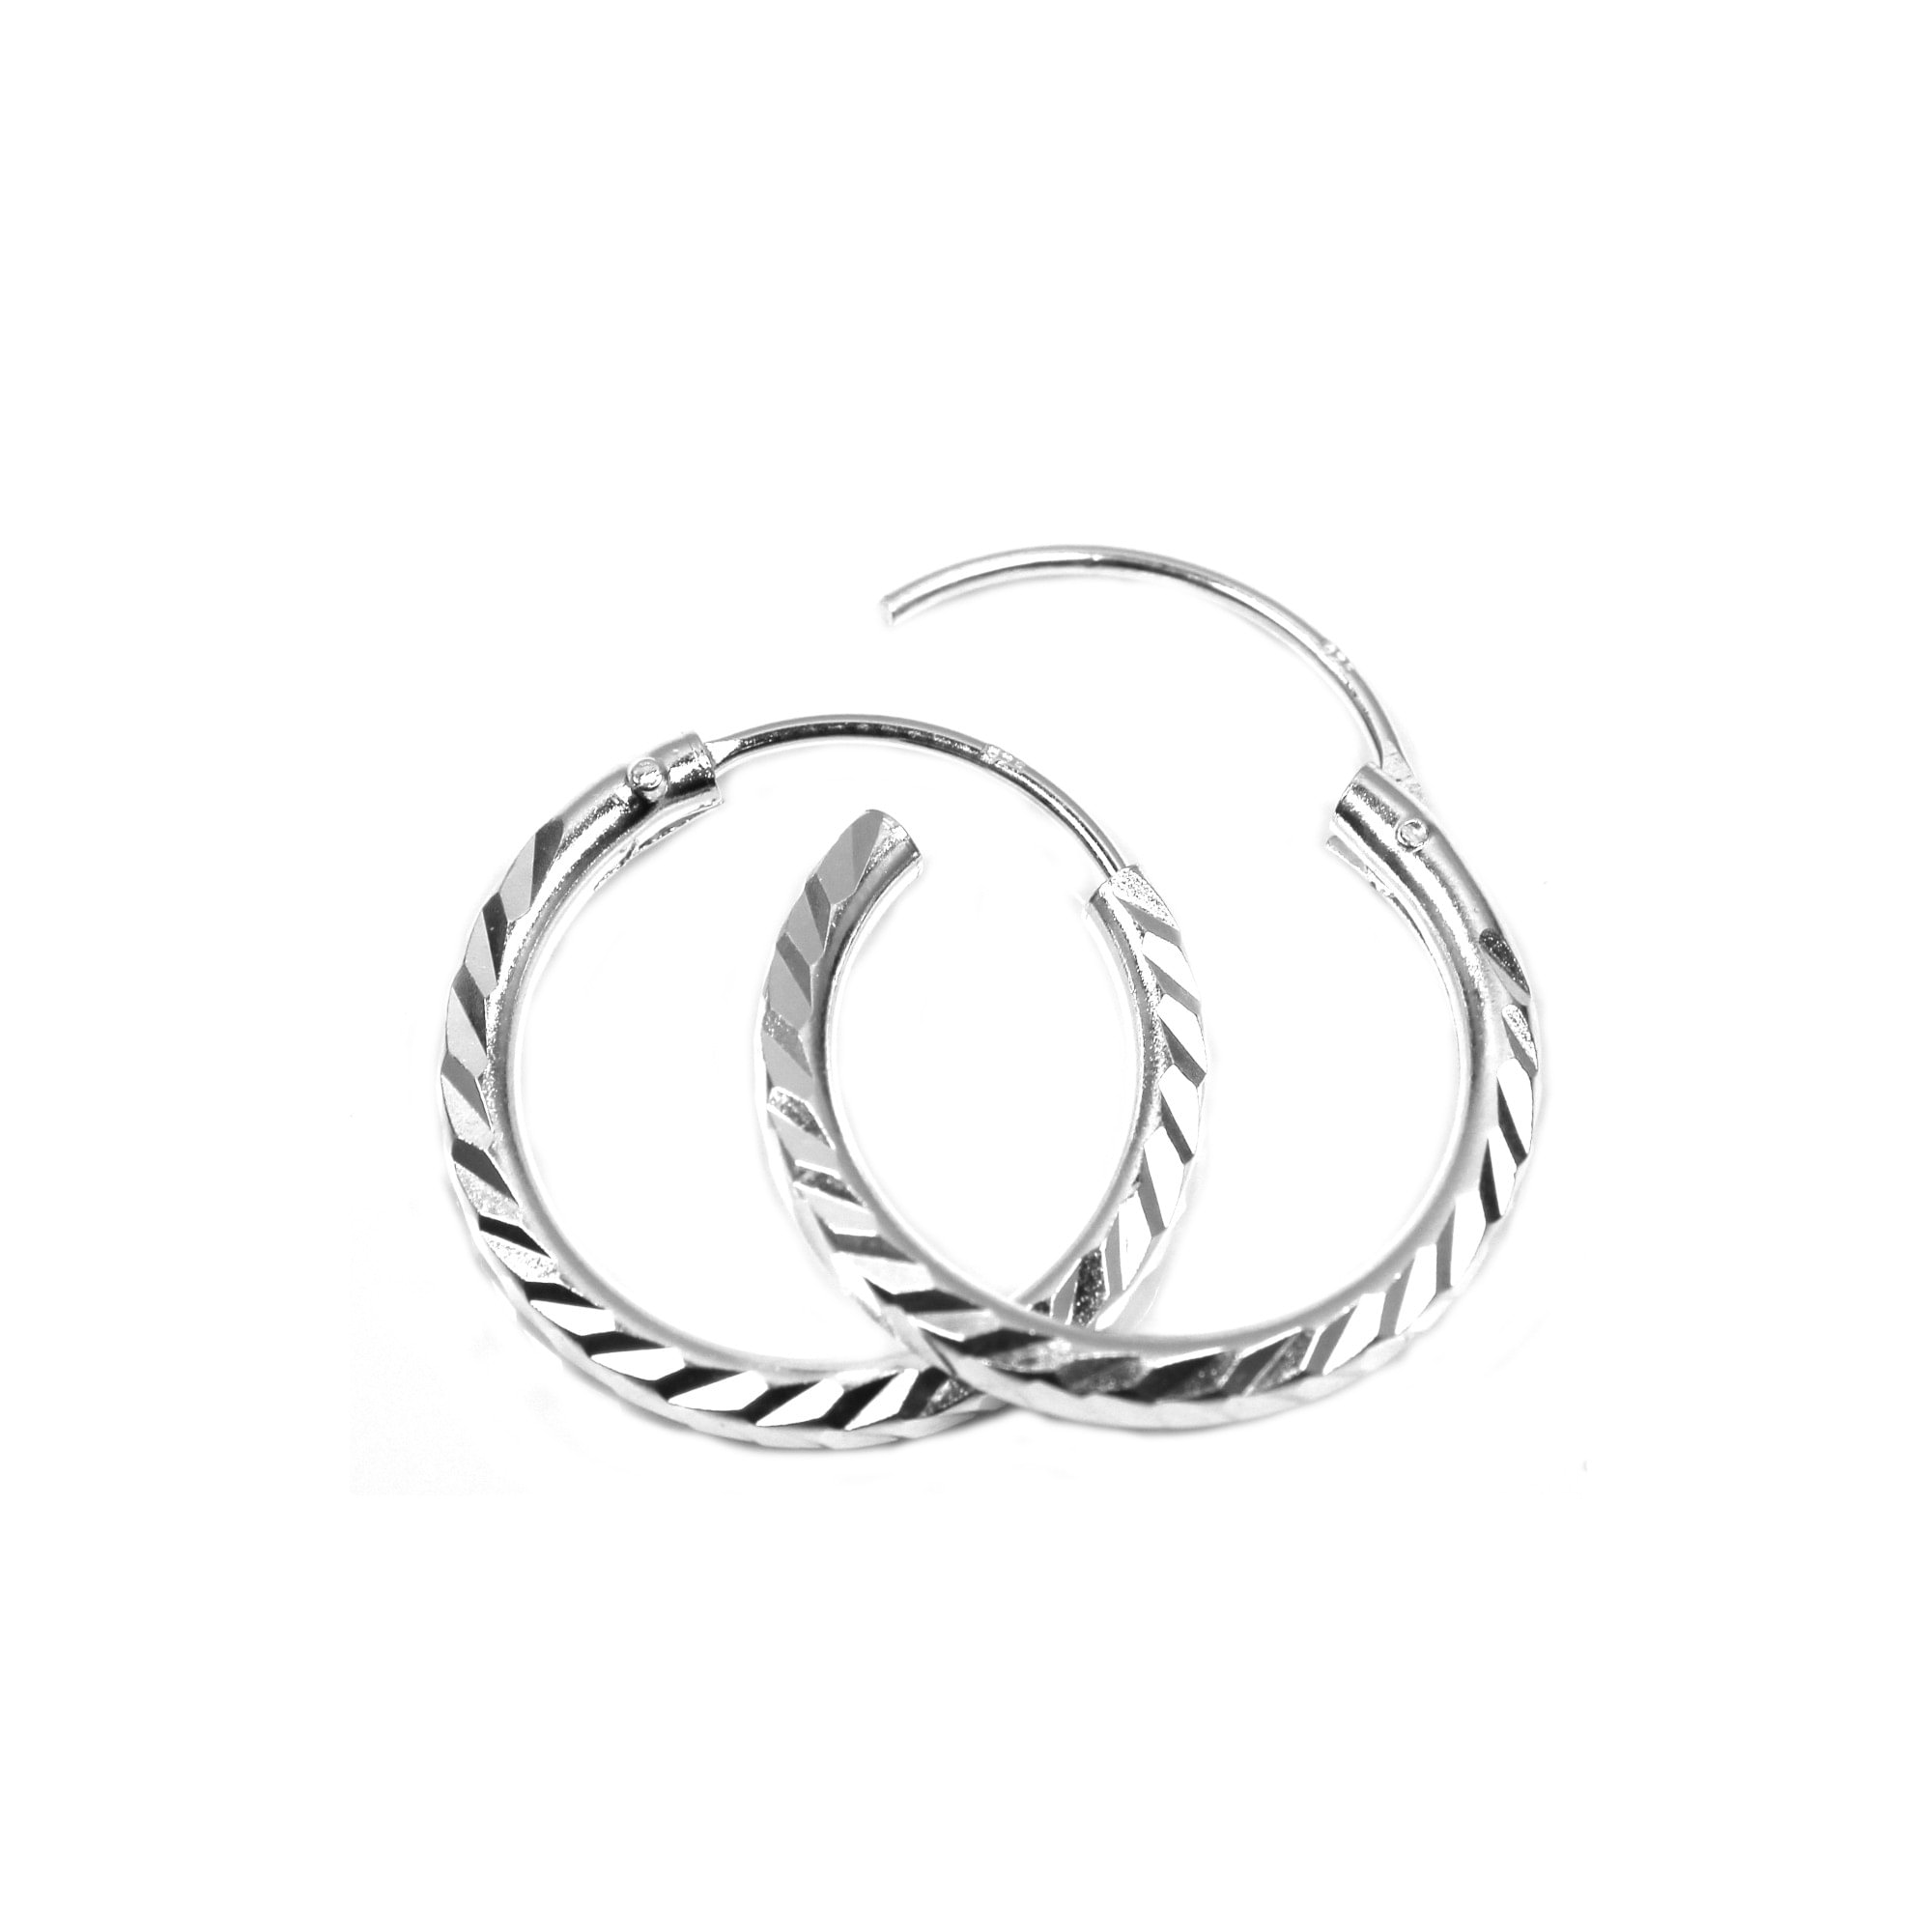 16mm diamond cut silver hoop earrings